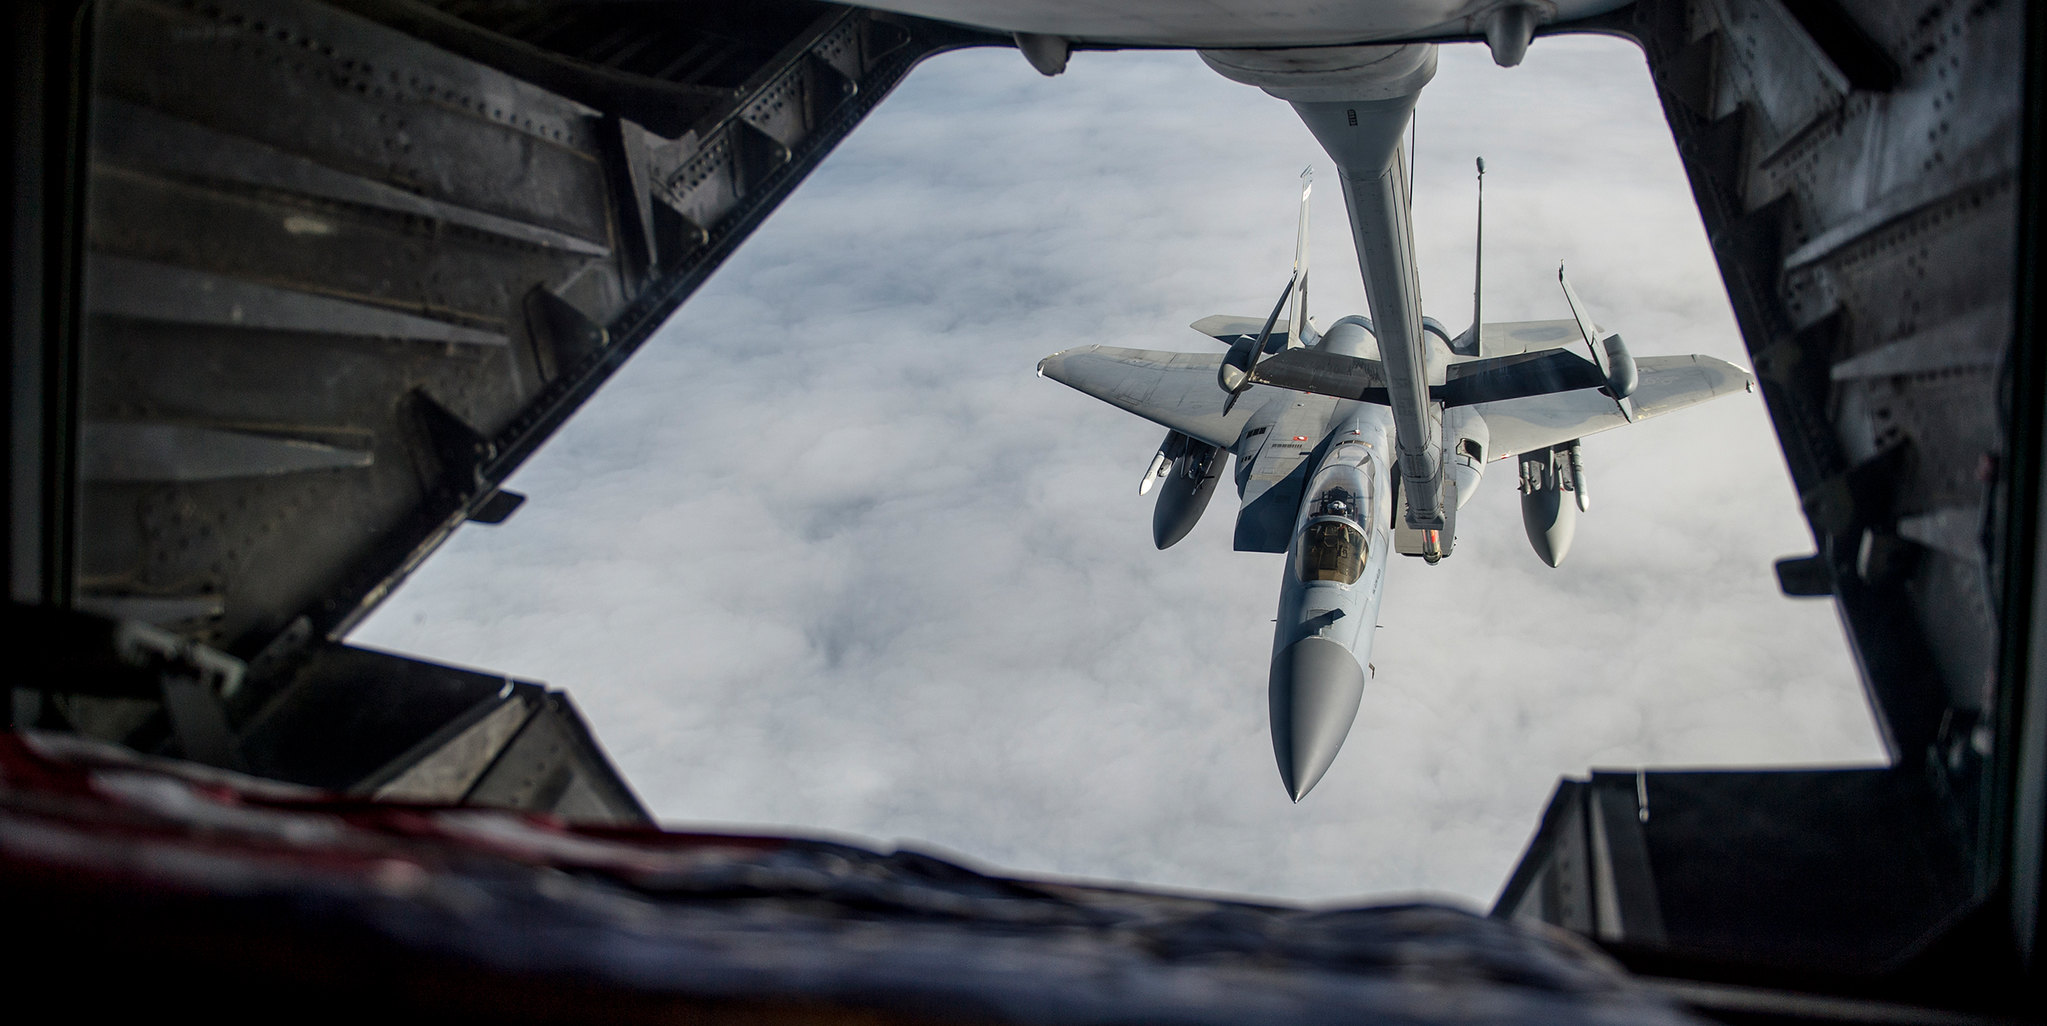 Airmen use a U.S. Air Force KC-10 Extender to refuel an F-15C Eagle as part of exercise Northern Edge on May 14, 2019, at Joint Base Elmendorf-Richardson, Alaska. (Master Sgt. Nathan Lipscomb/Air Force)